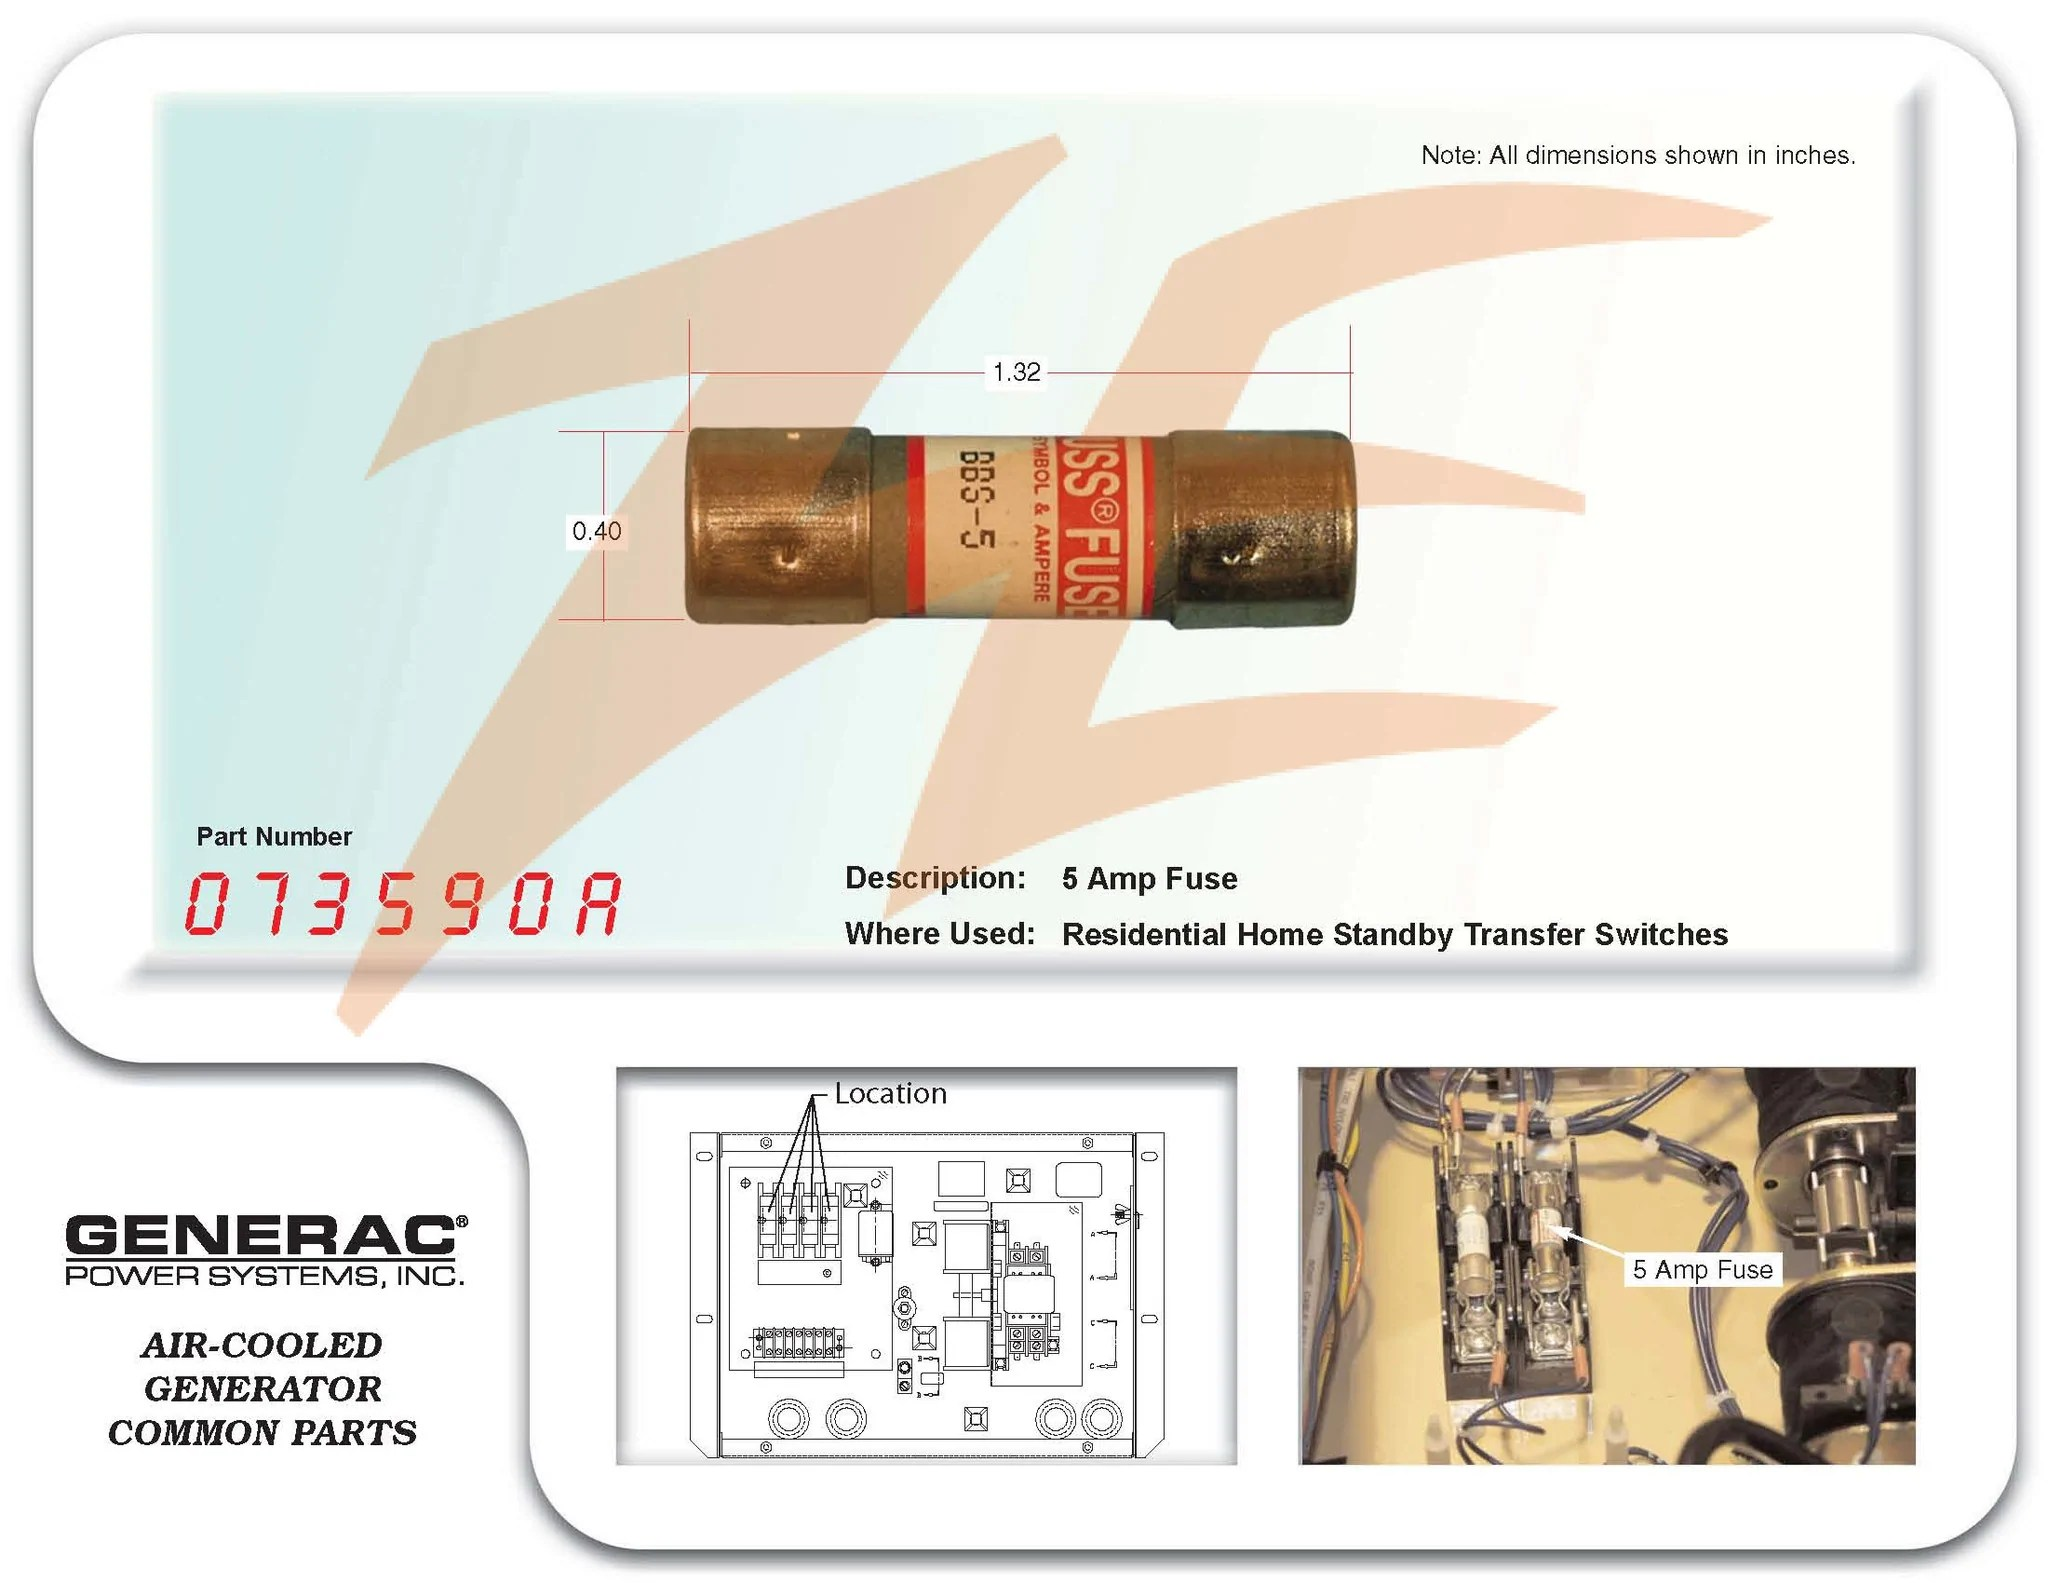 hight resolution of generac 073590a 5 amp buss fuse ziller electric home electrical box transfer switch fuse box